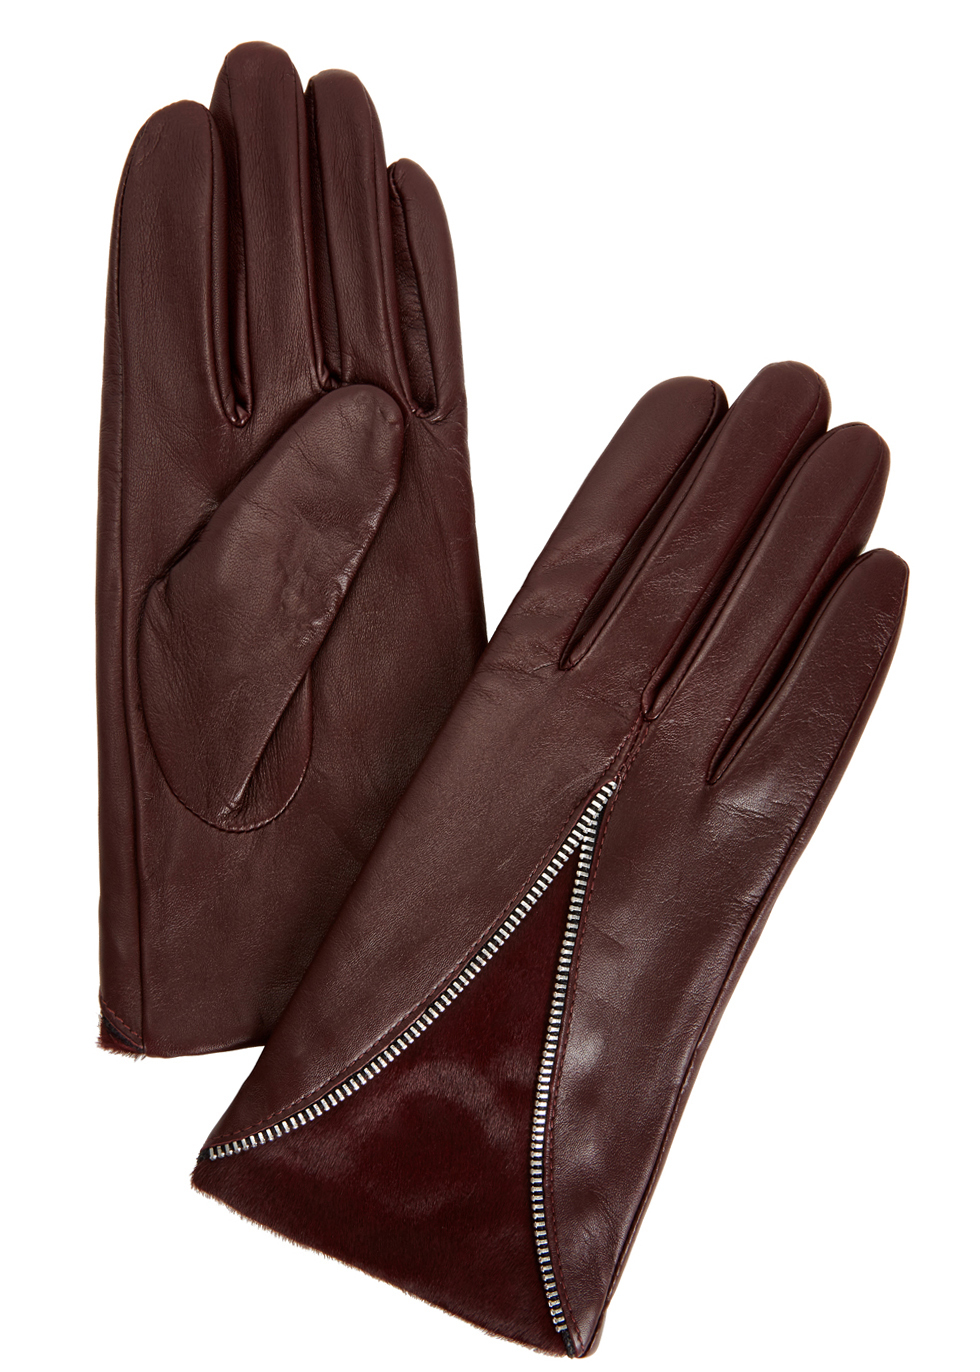 Layla Burgundy Leather And Calf Hair Gloves - predominant colour: burgundy; occasions: casual, creative work; type of pattern: standard; embellishment: zips; style: standard; length: wrist; material: leather; pattern: plain; season: a/w 2016; wardrobe: highlight